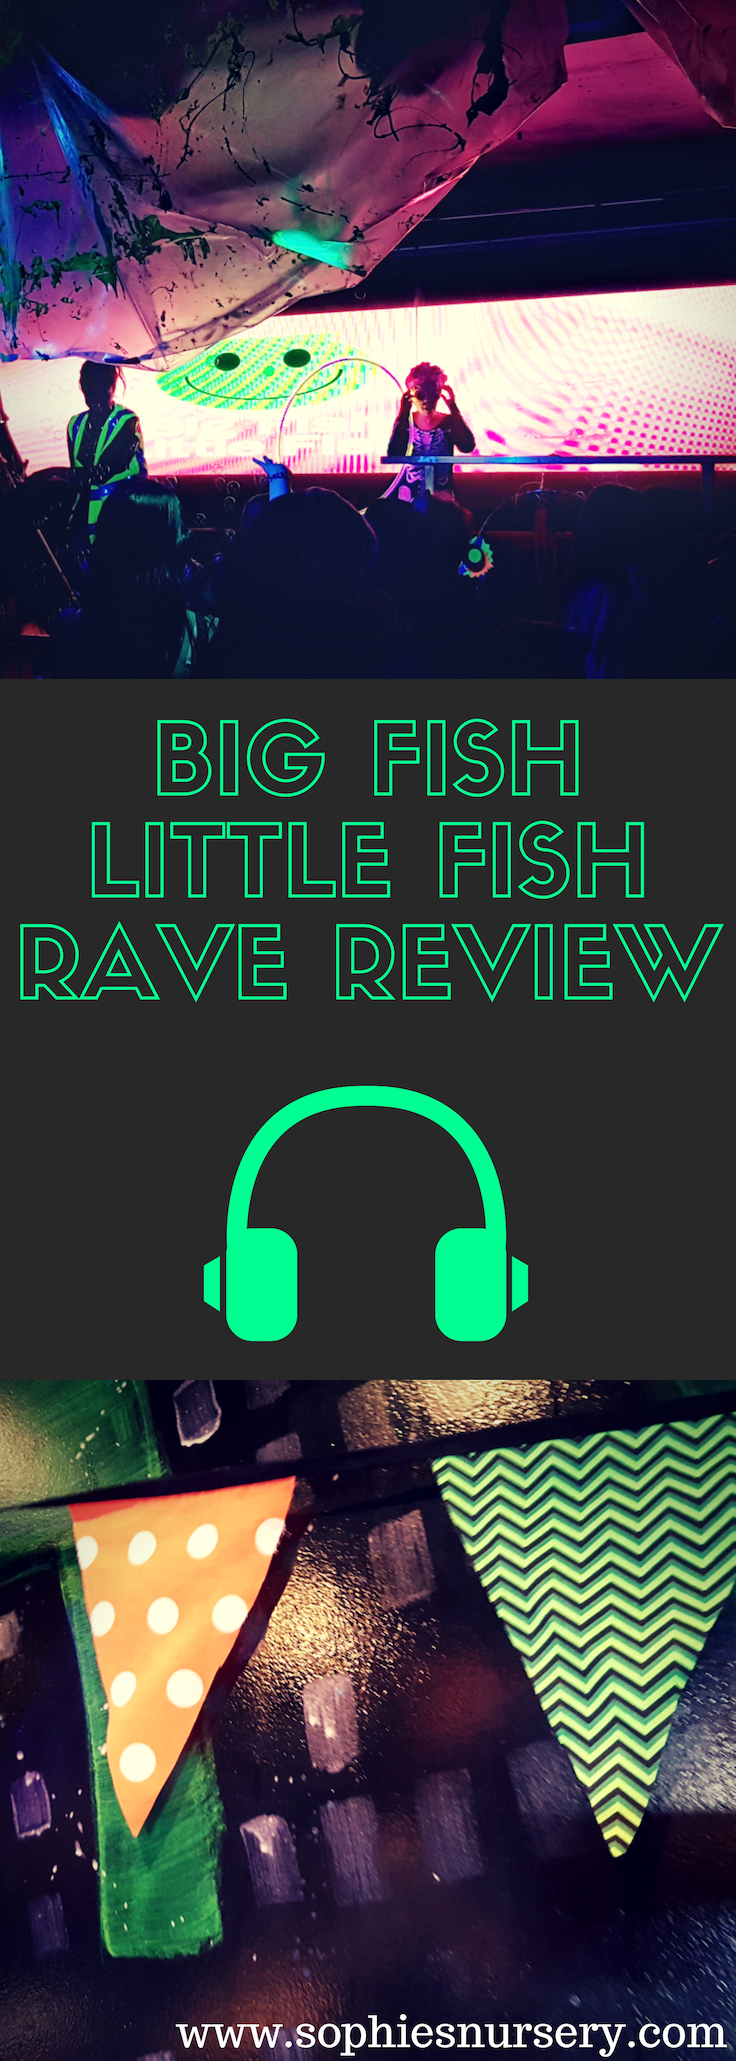 We had a blast at the award-winning Big Fish Little Fish rave, a special rave event put on just for families. Read our thoughts on this super family party!